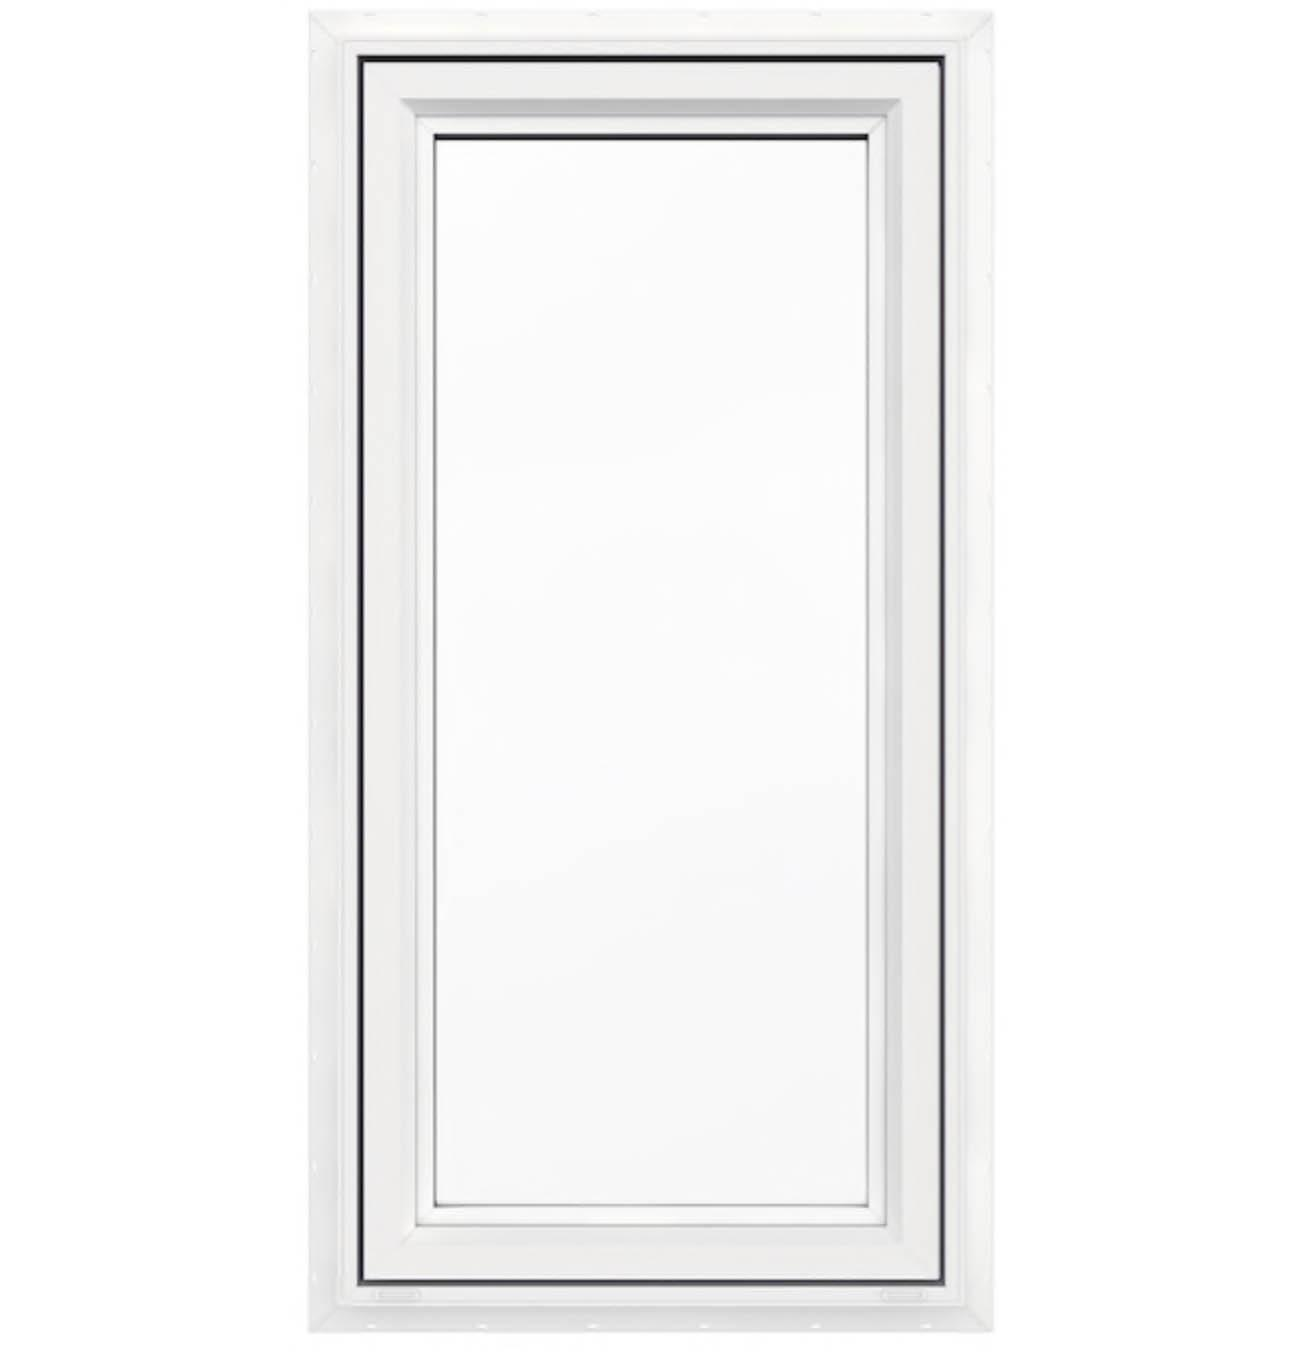 Harvey Classic Vinyl Casement Window